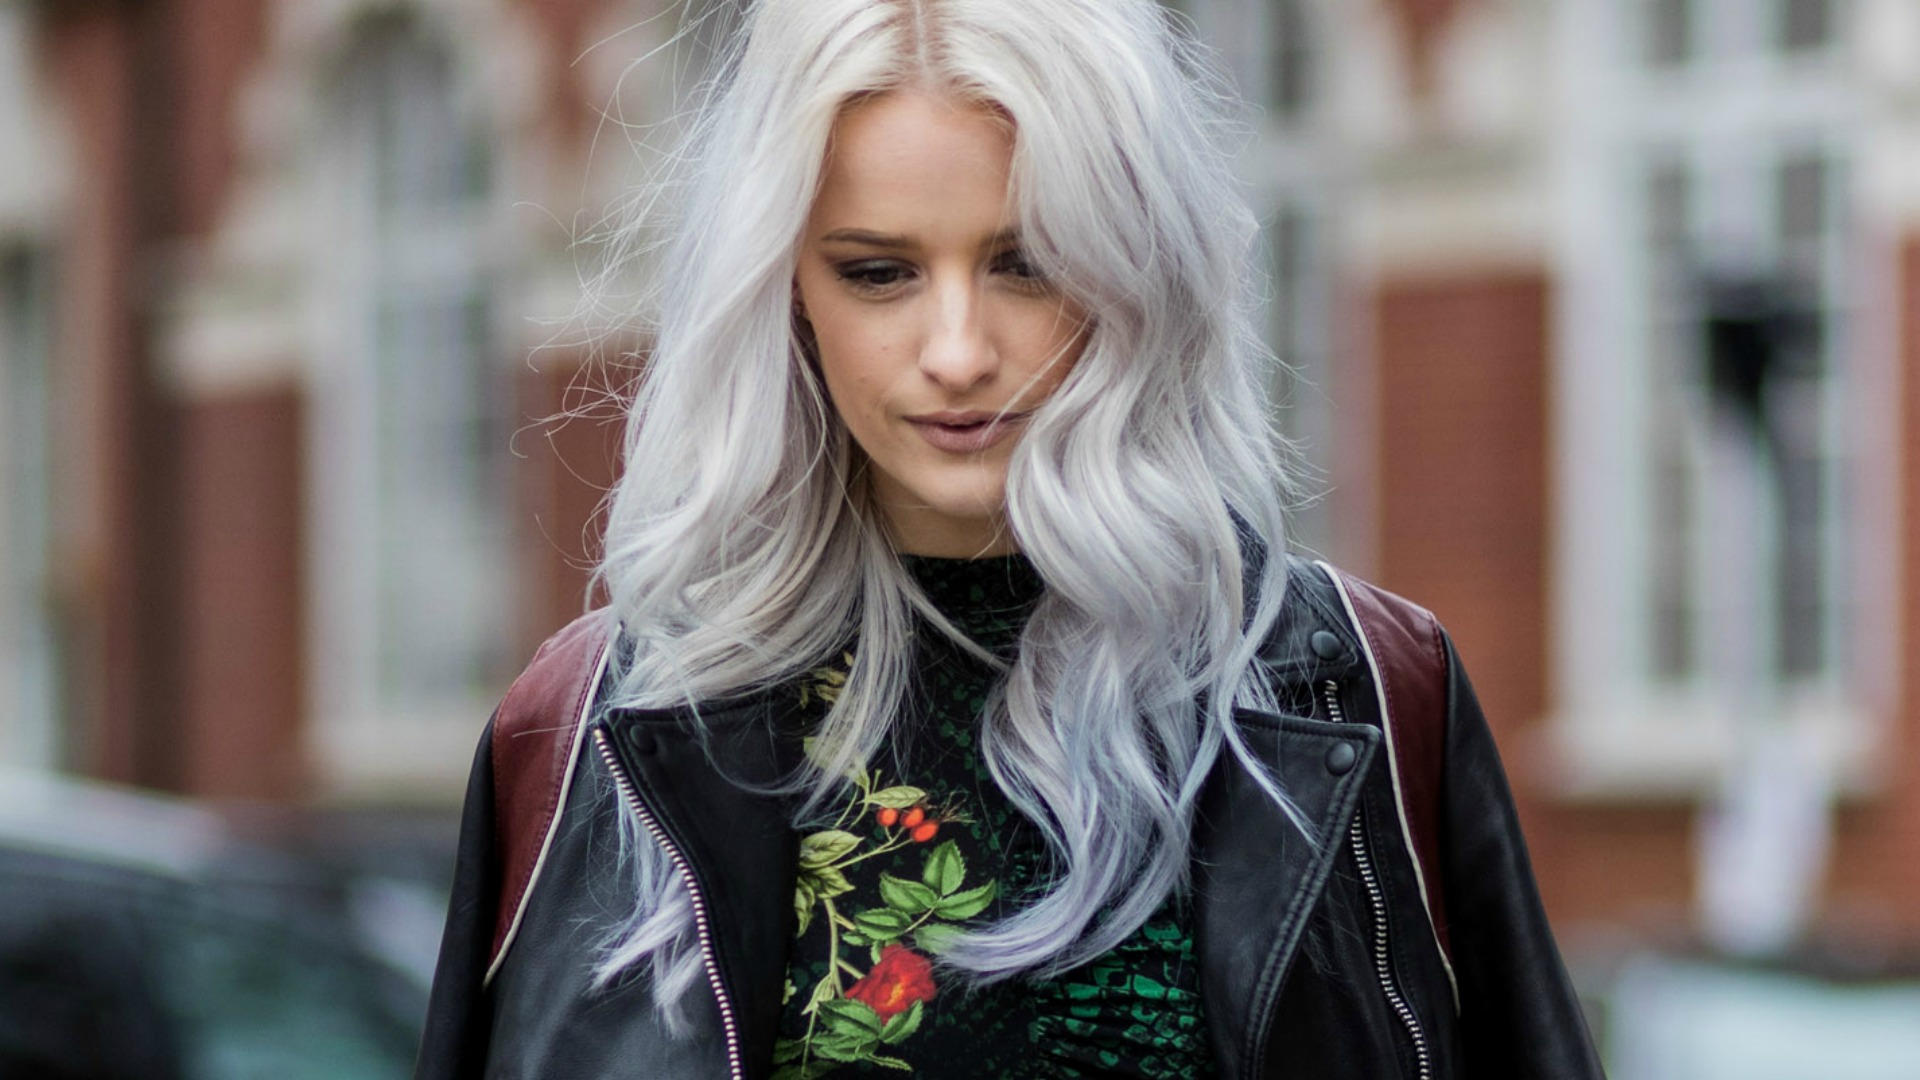 10 Things No One Ever Tells You About: Dyeing Your Hair